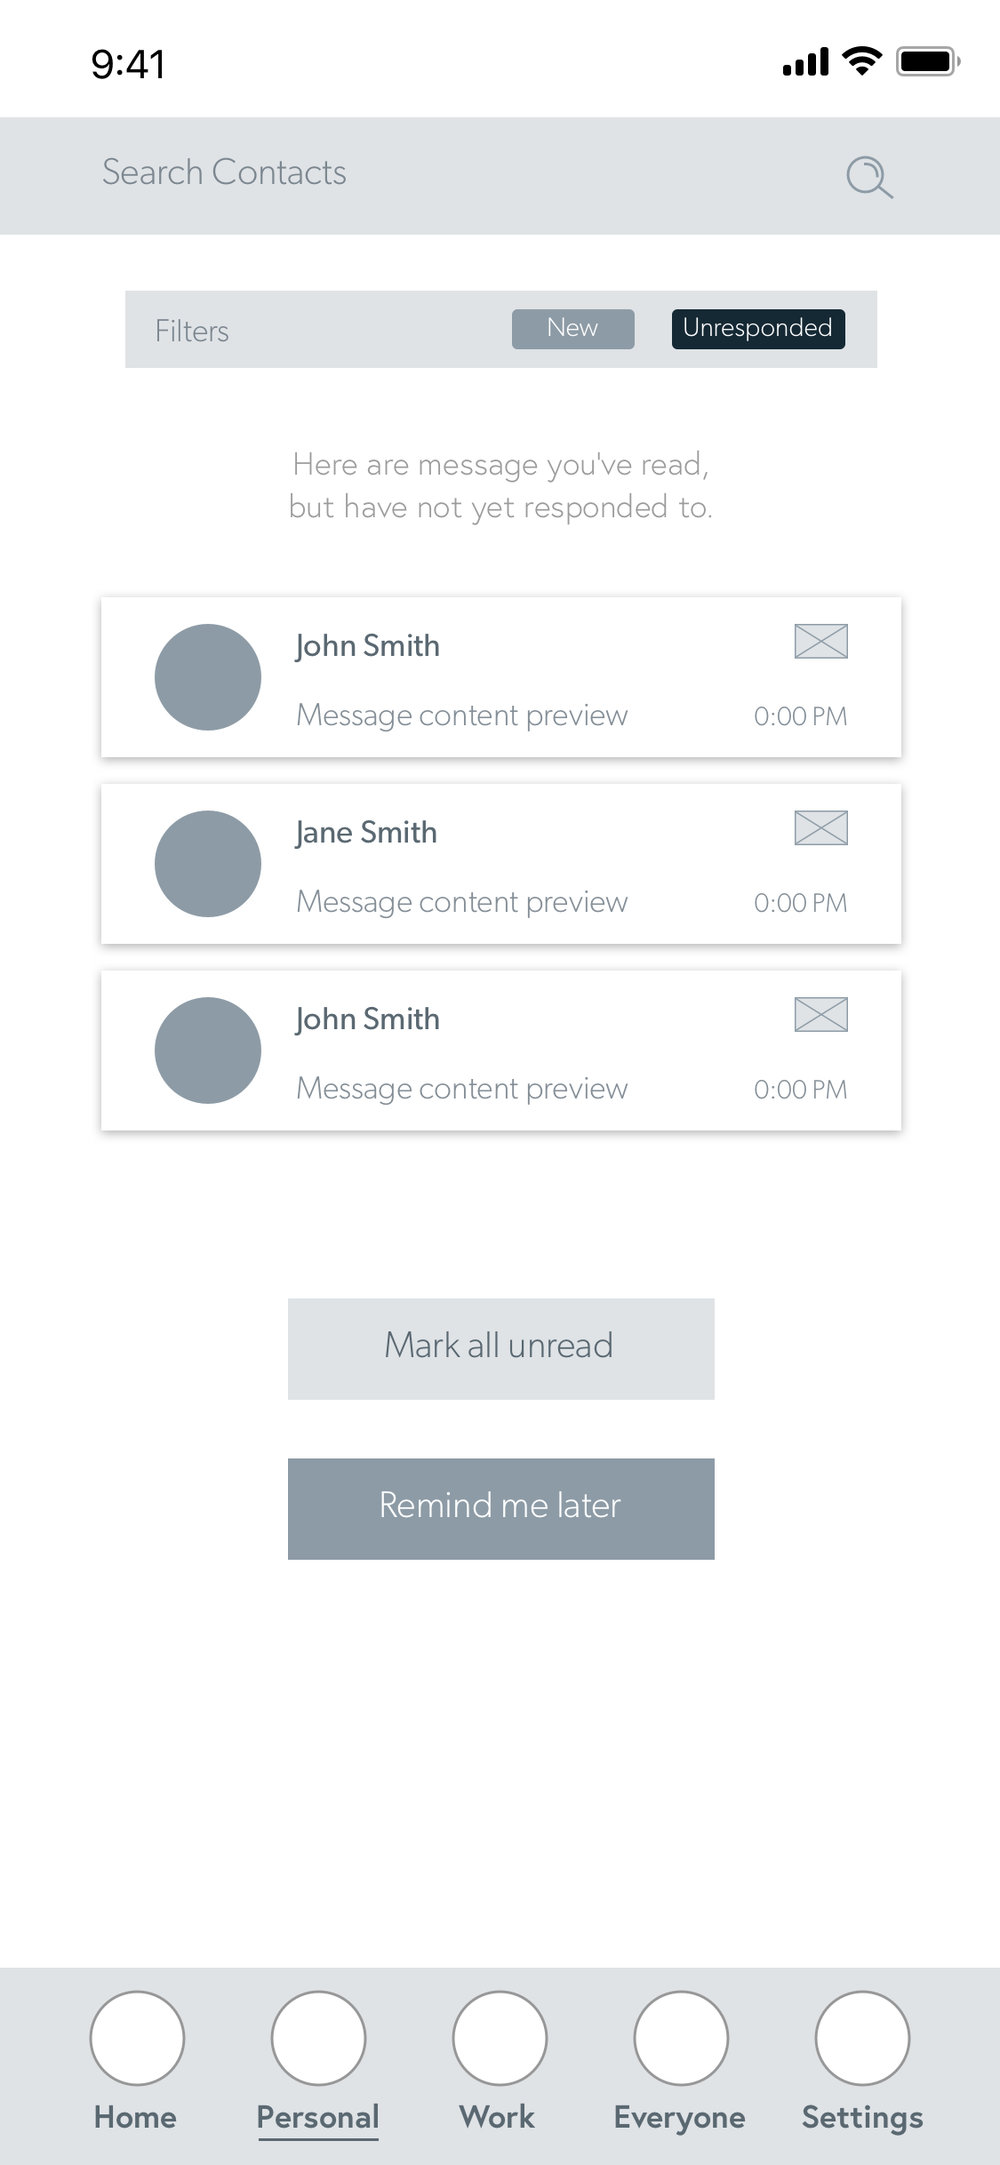 And example of what it would look like if an 'Unresponded' filter is applied.